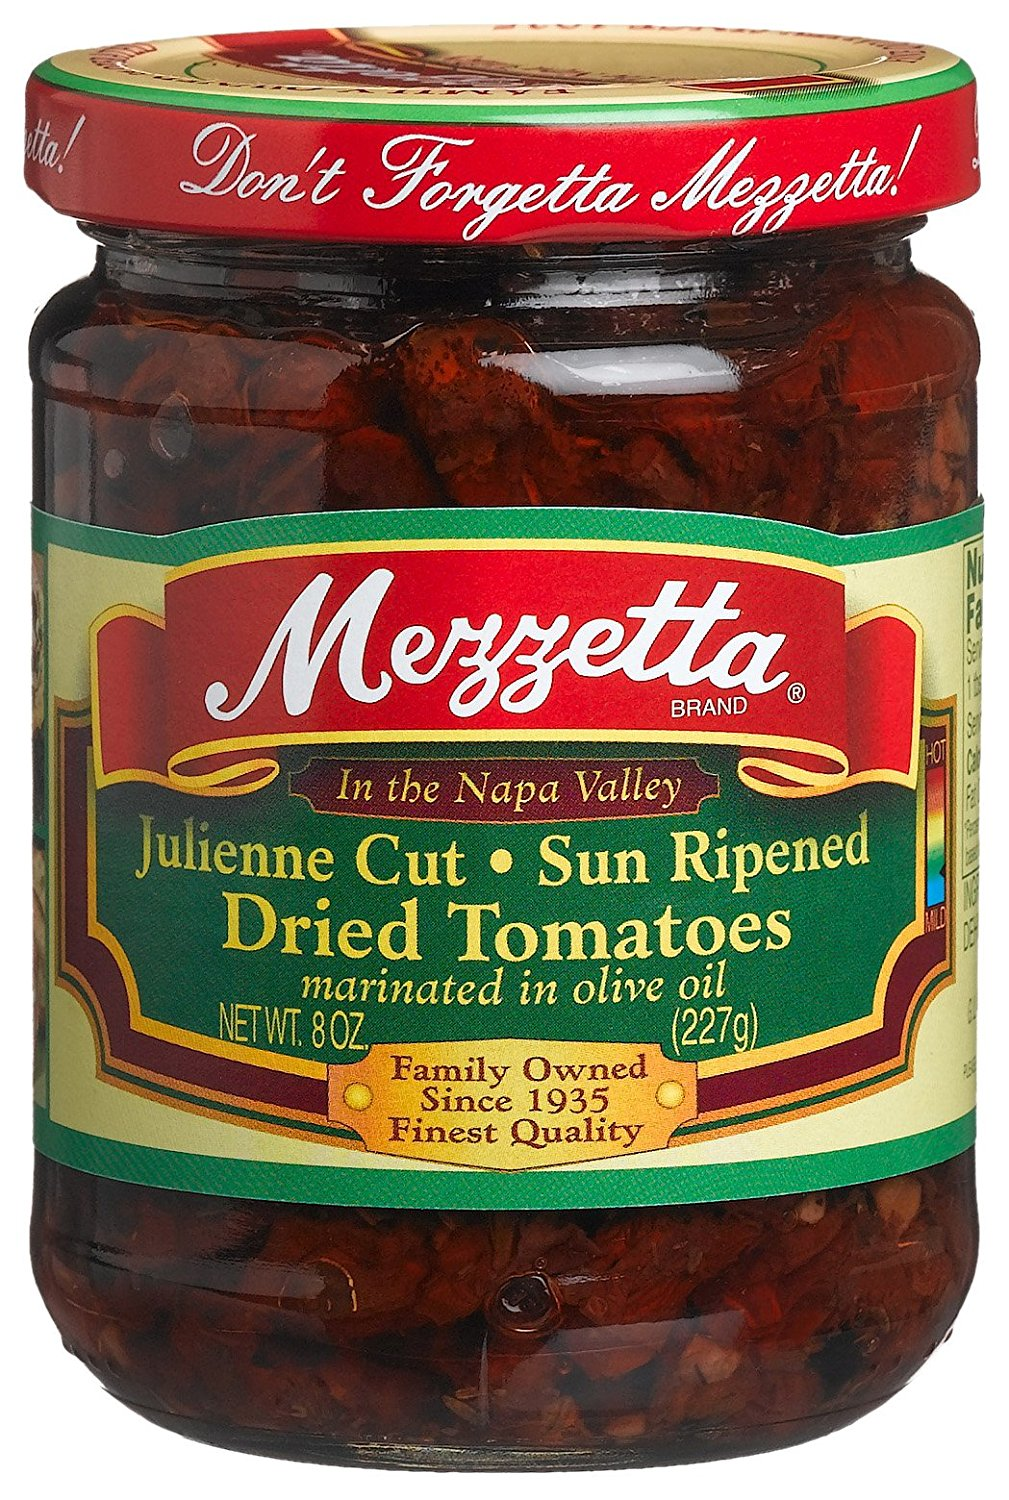 MEZZETTA: Juliene Cut Sun-Ripened Dried Tomatoes, 8 Oz